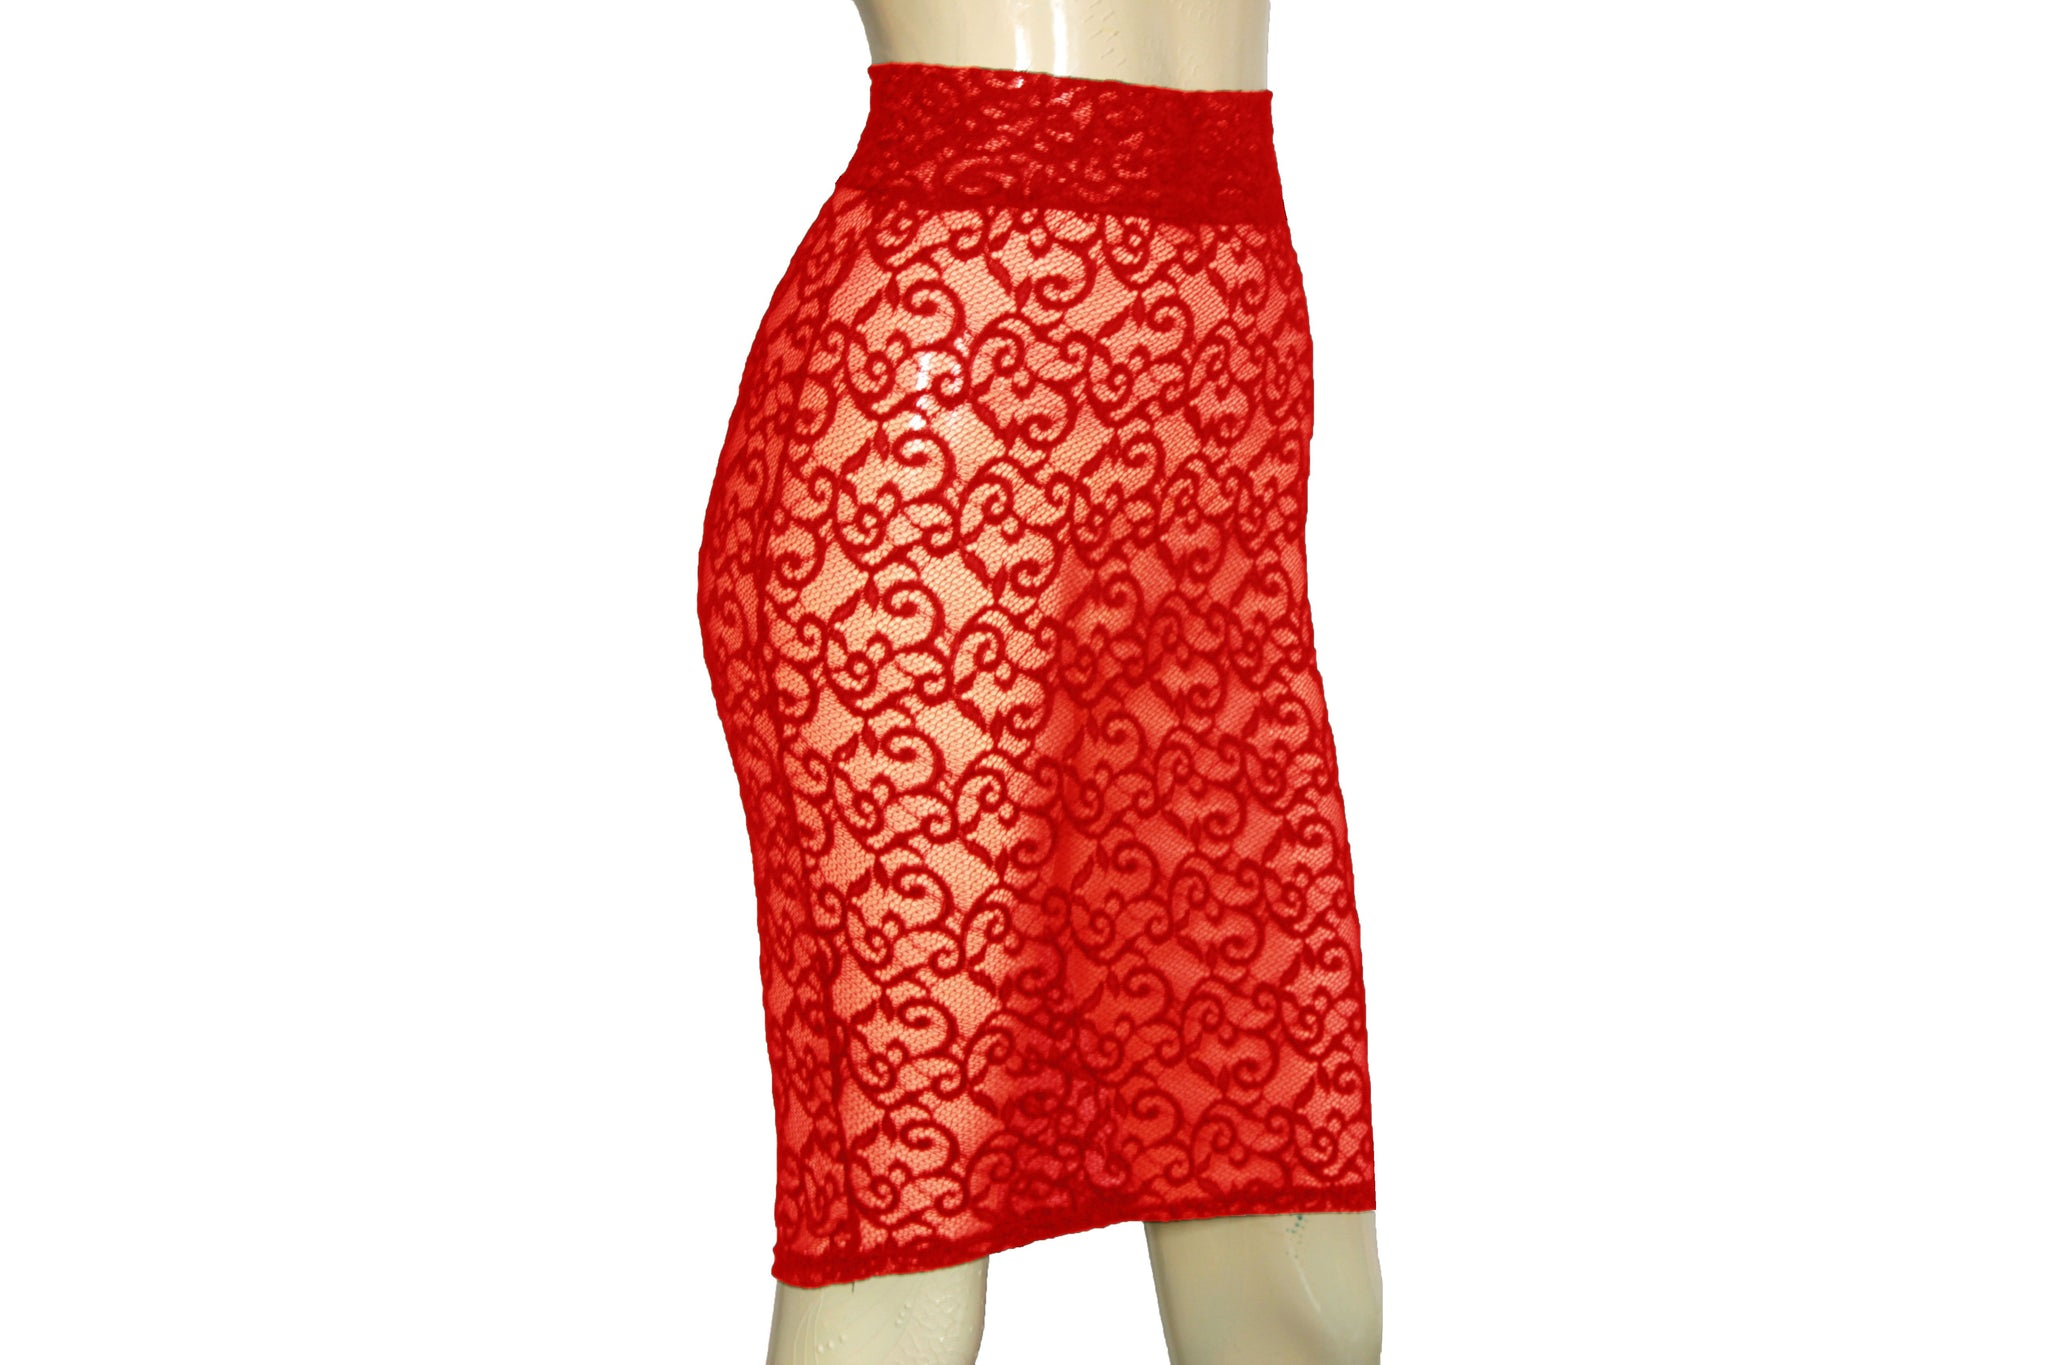 Sheer Pencil Skirt Red Lace Bodycon See Through Knee Length Skirt Plus size Lingerie Sexy Gothic Clothing Rave Festival Bottoms